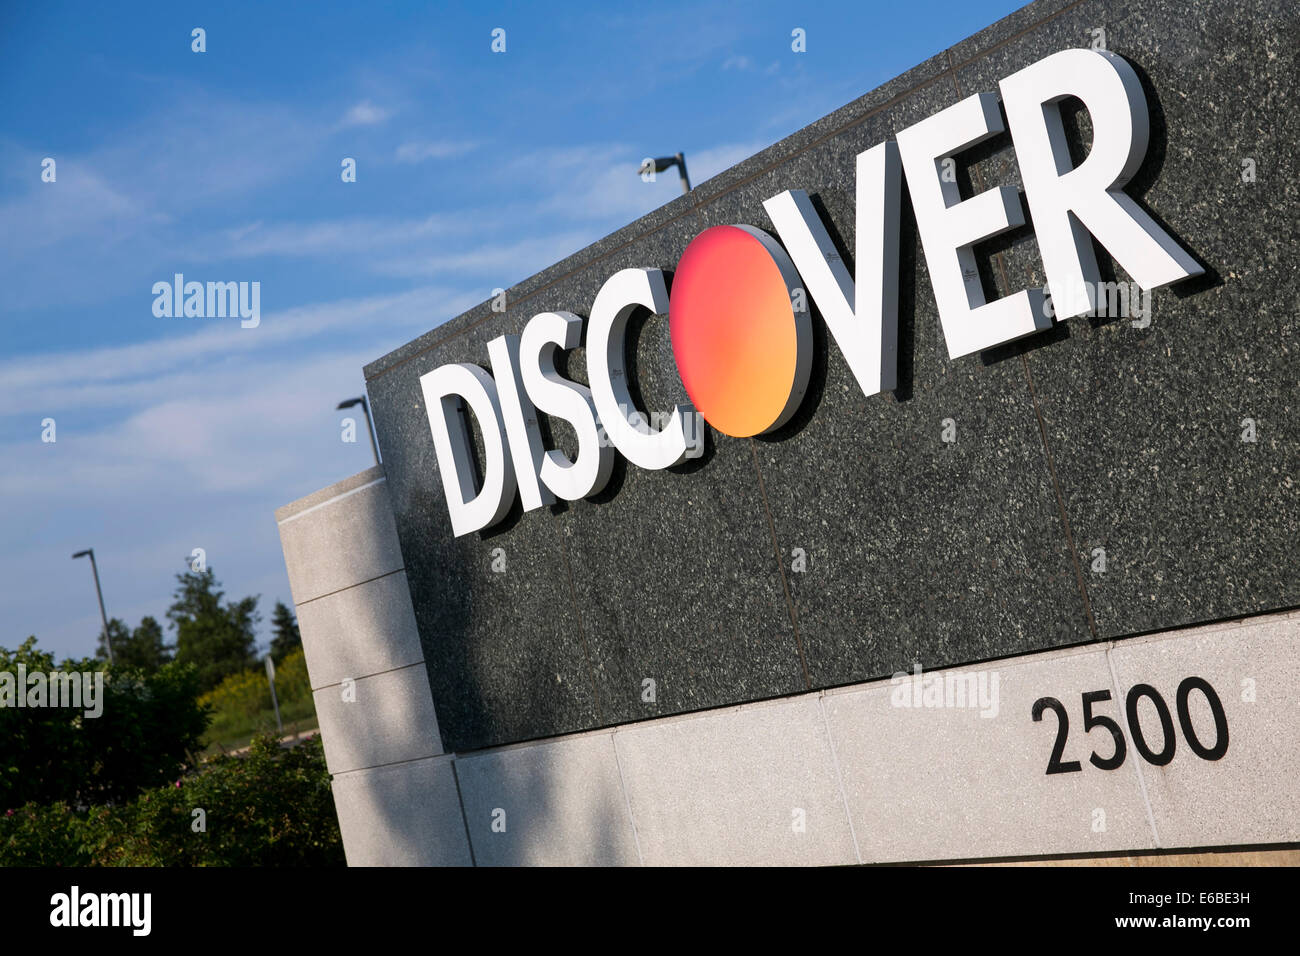 Der Hauptsitz von Discover Financial Services in Riverwoods, Illinois. Stockbild